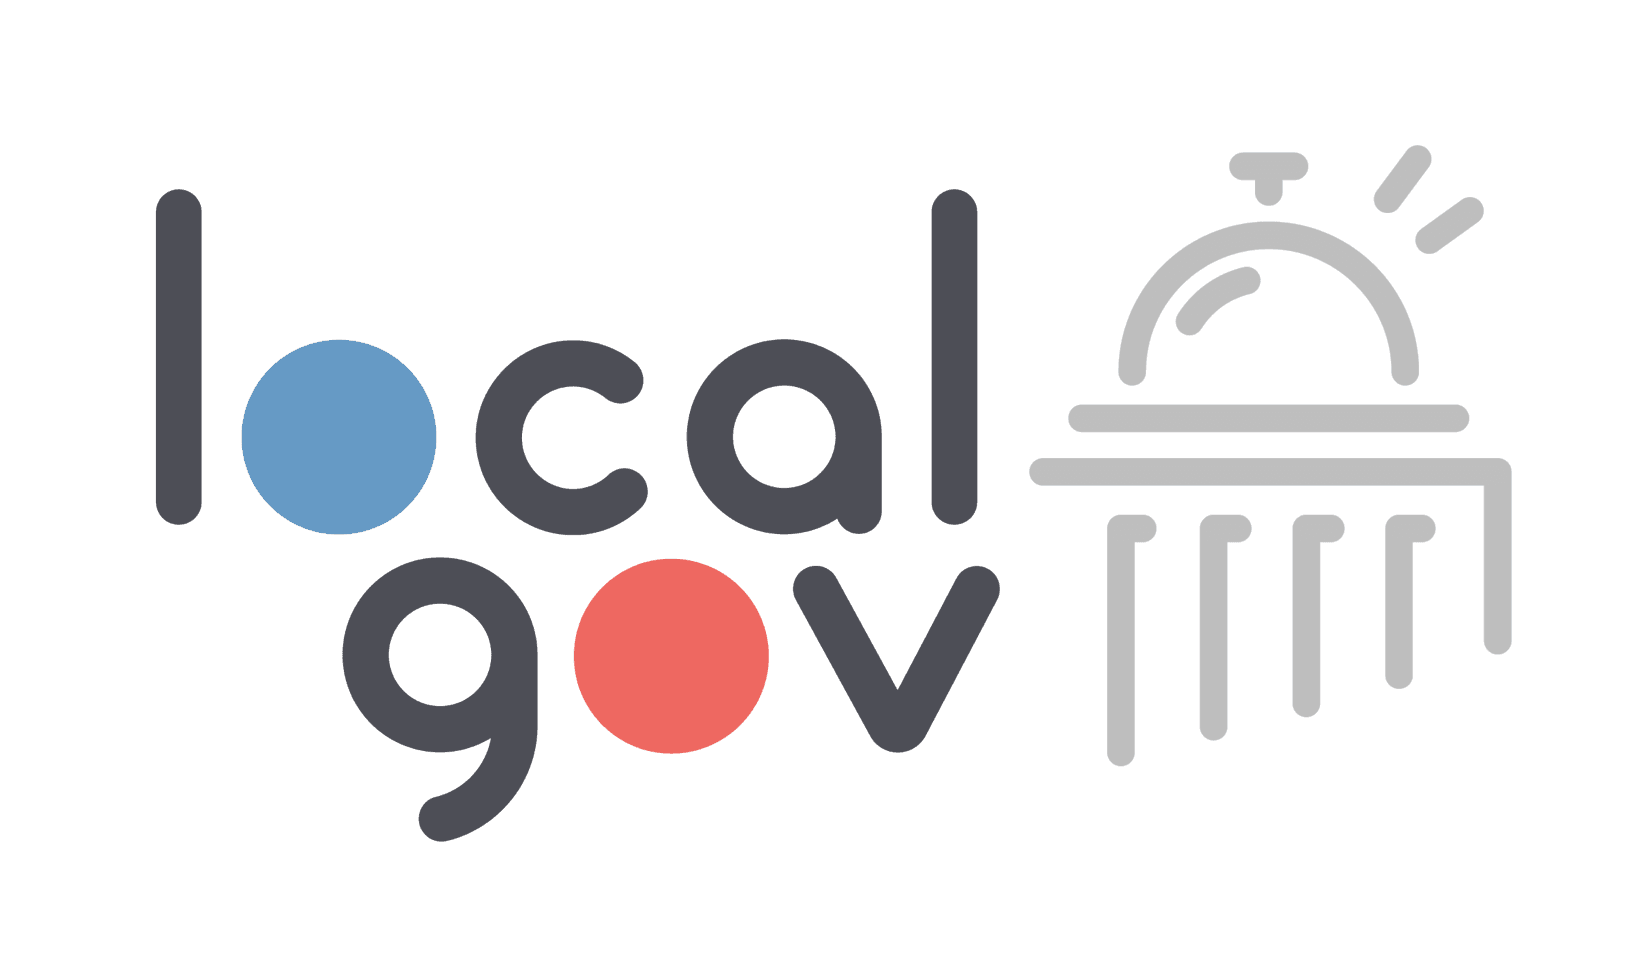 localgov-logo Opens in new window